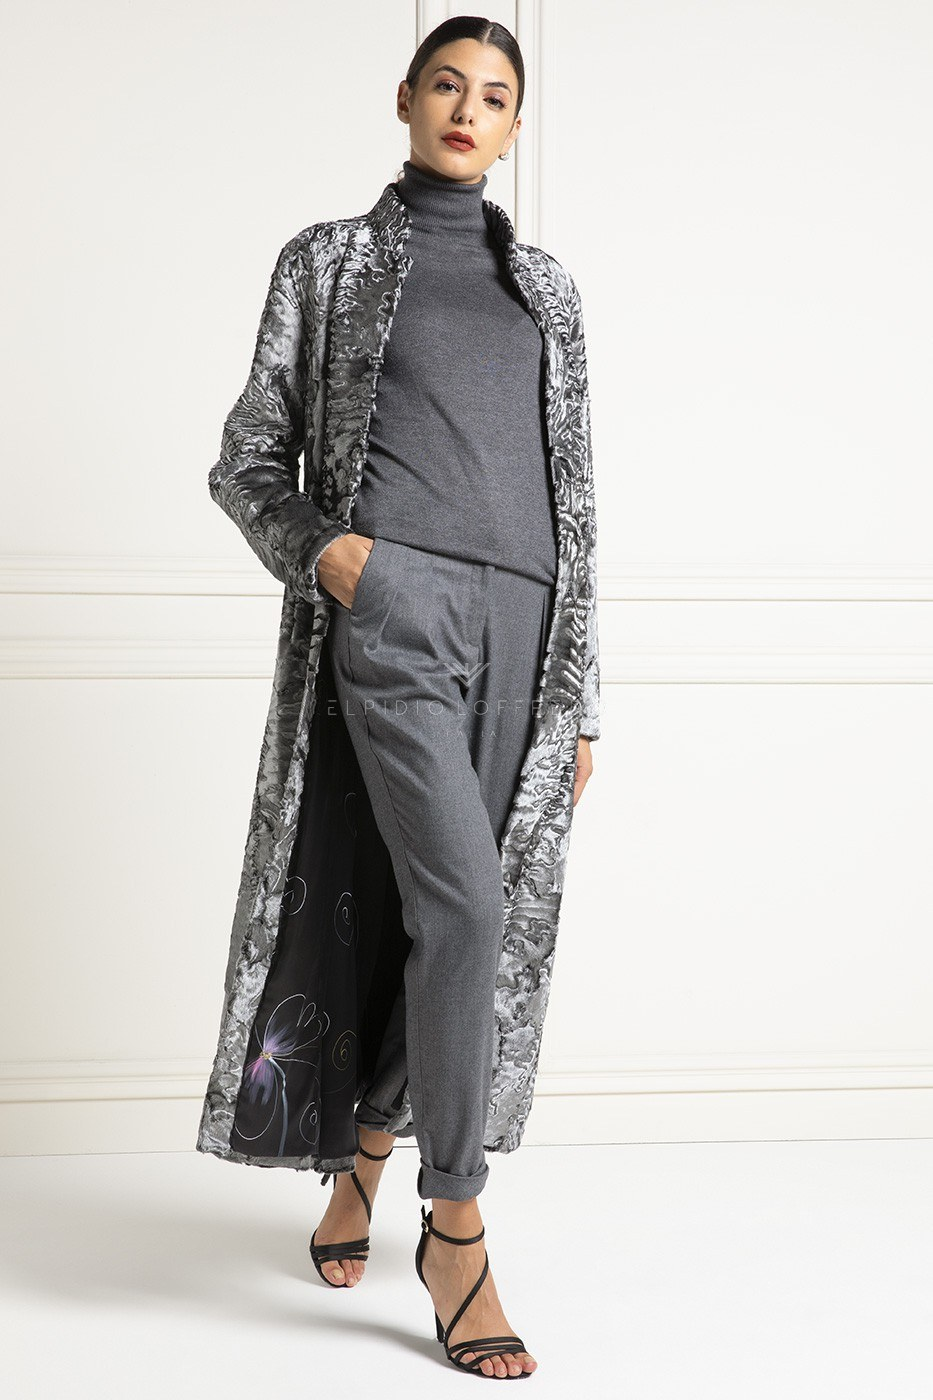 Silver Swakara Coat - Length 130 cm